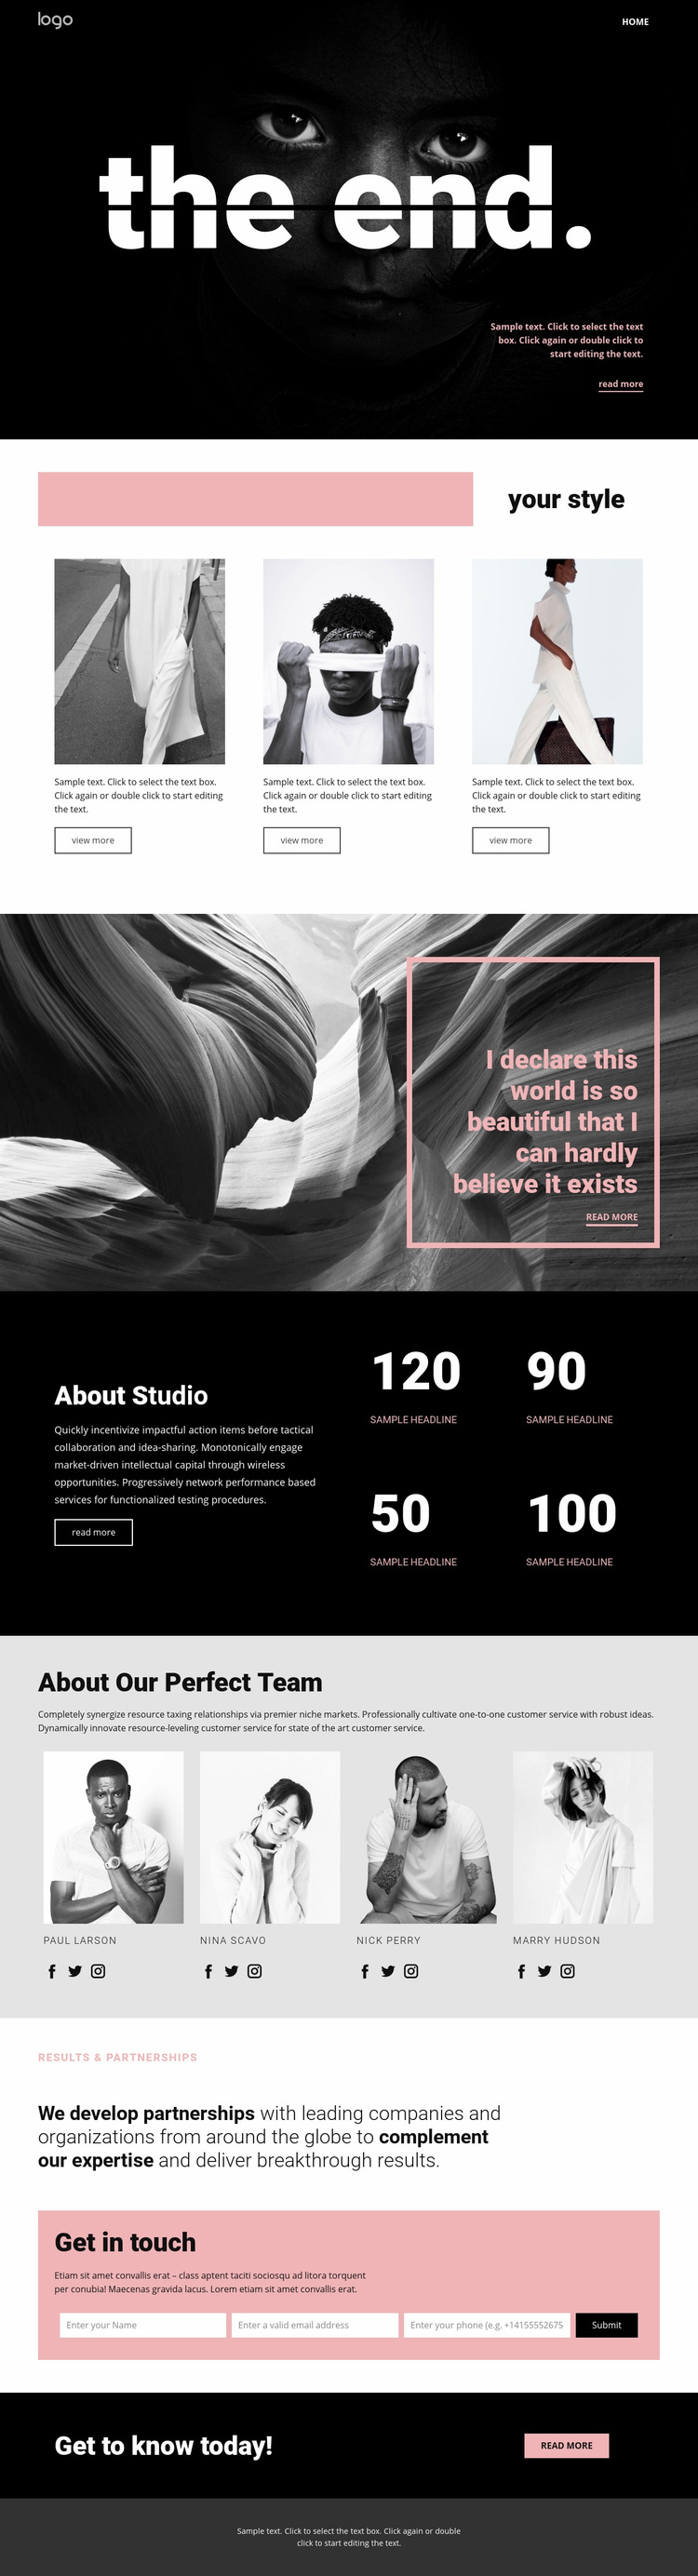 Perfecting styles of art Web Page Designer